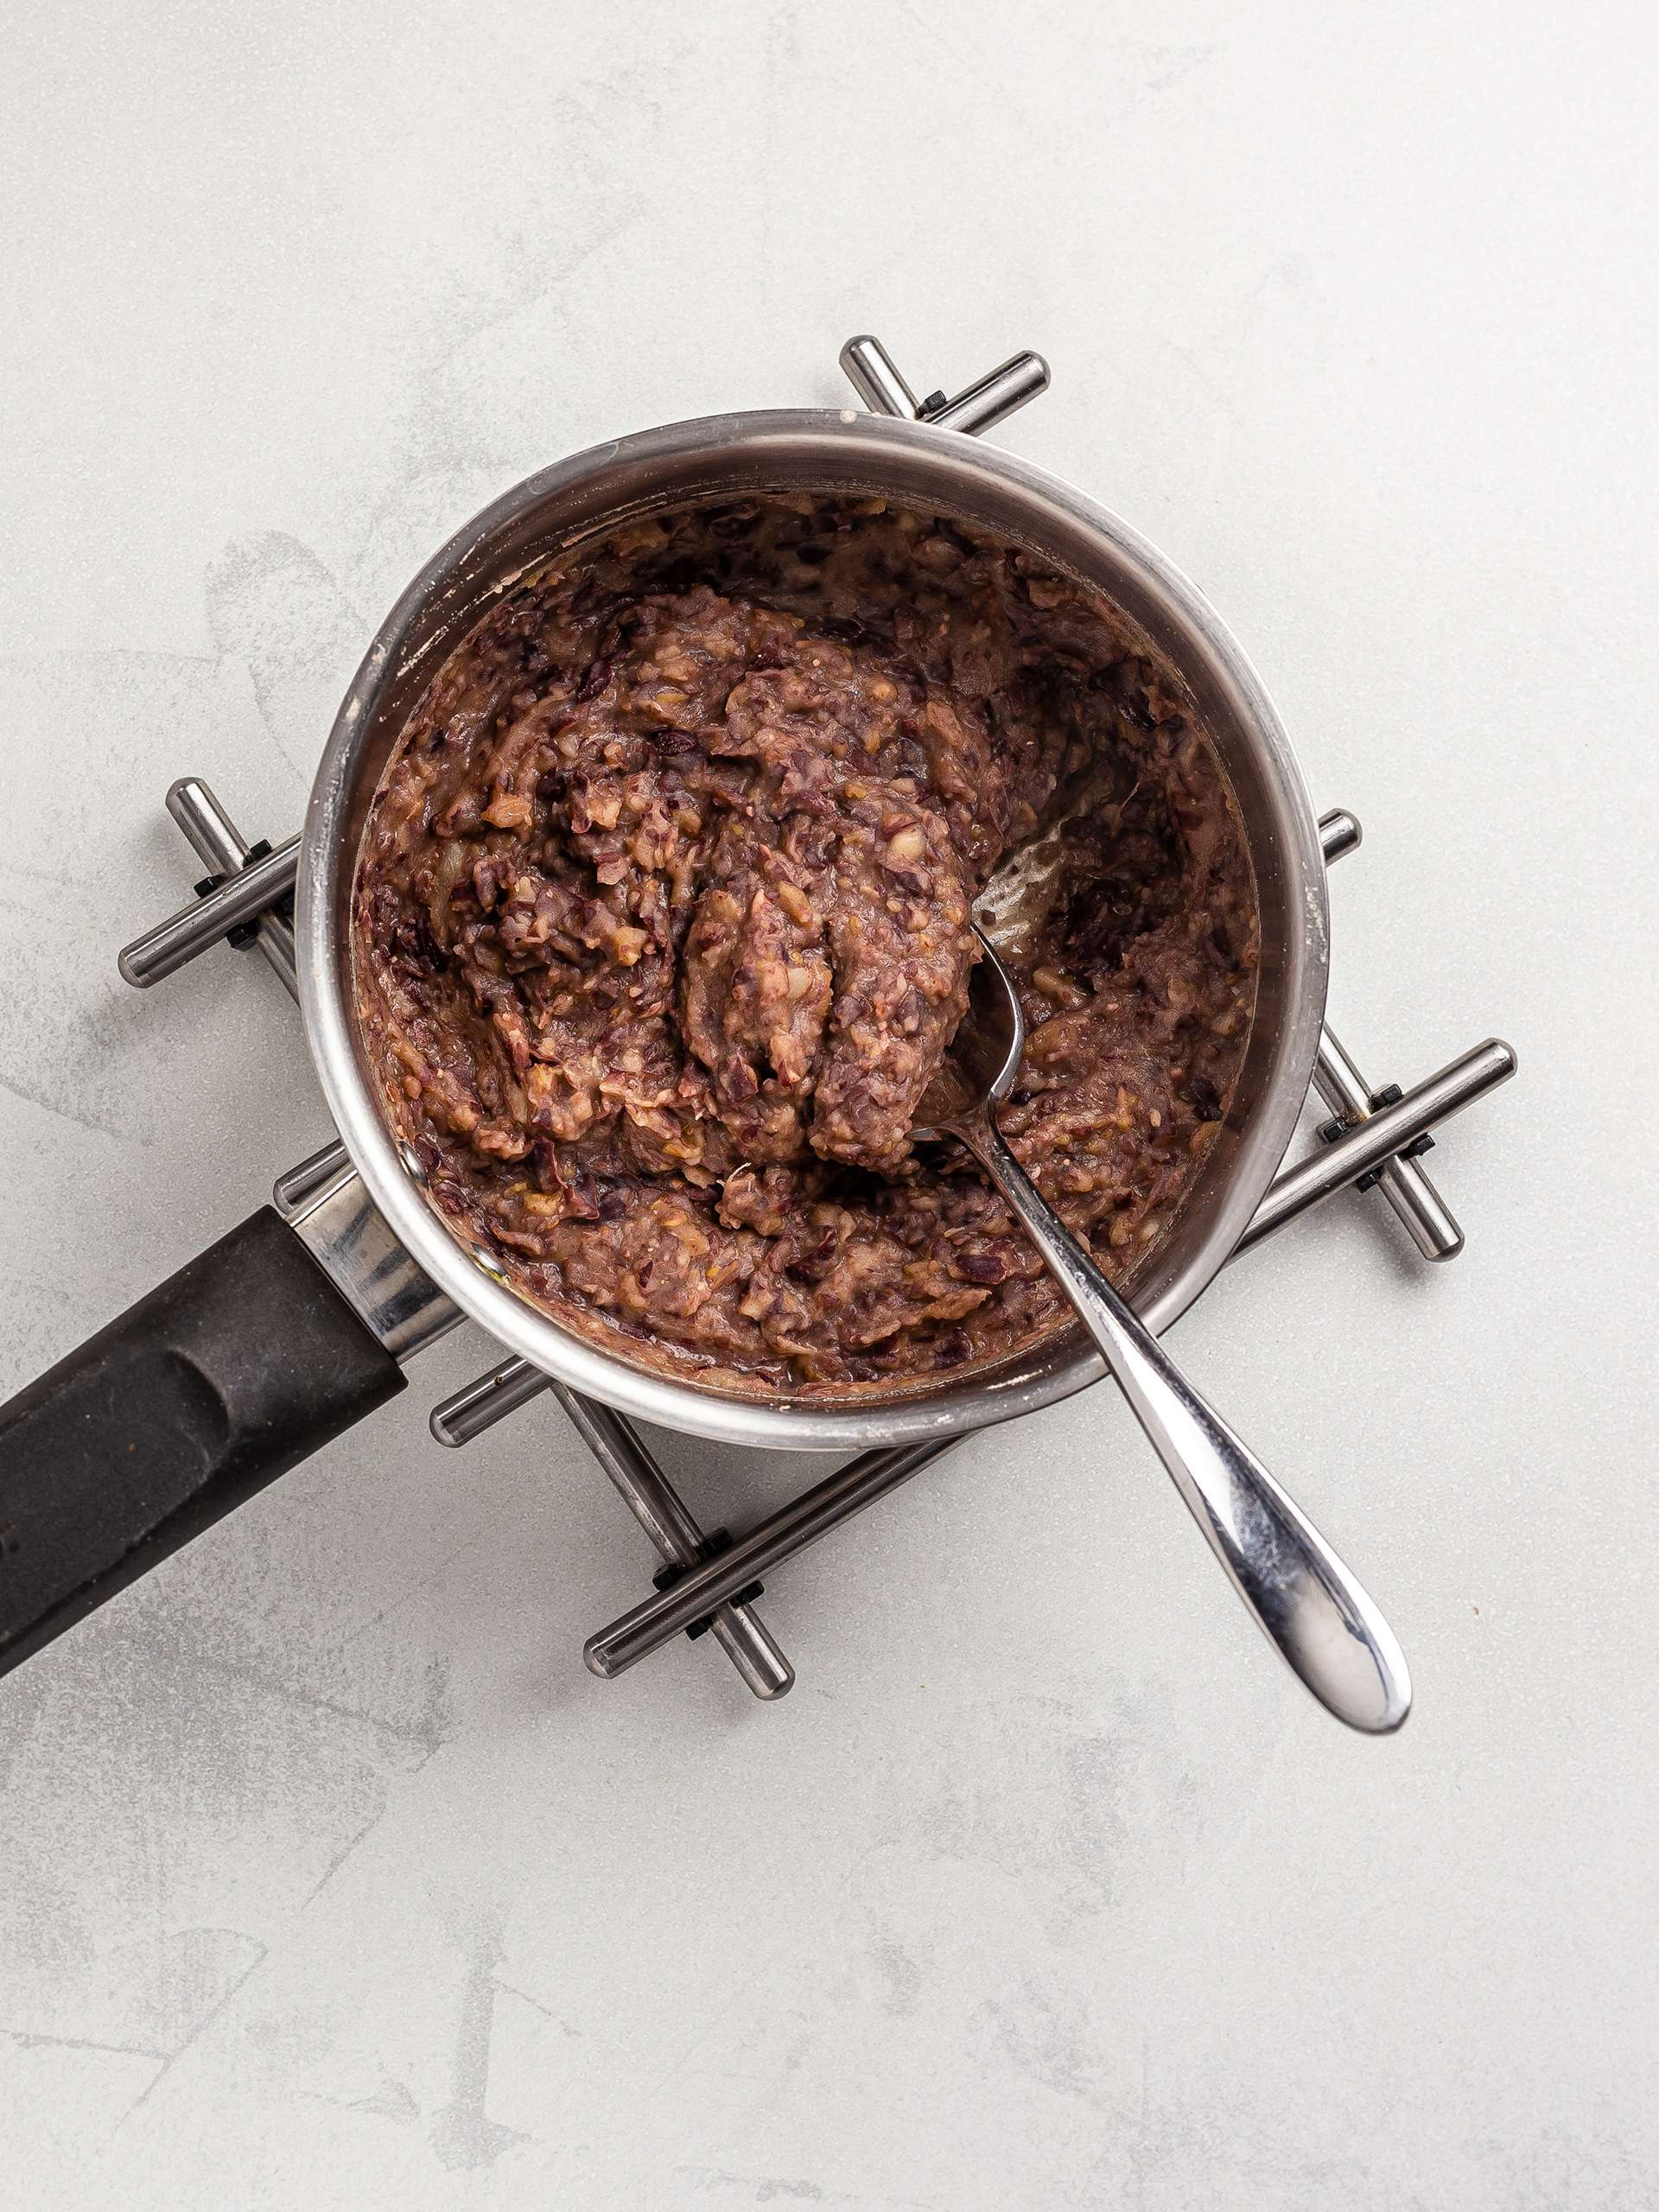 adzuki beans cooking with dates for anko paste